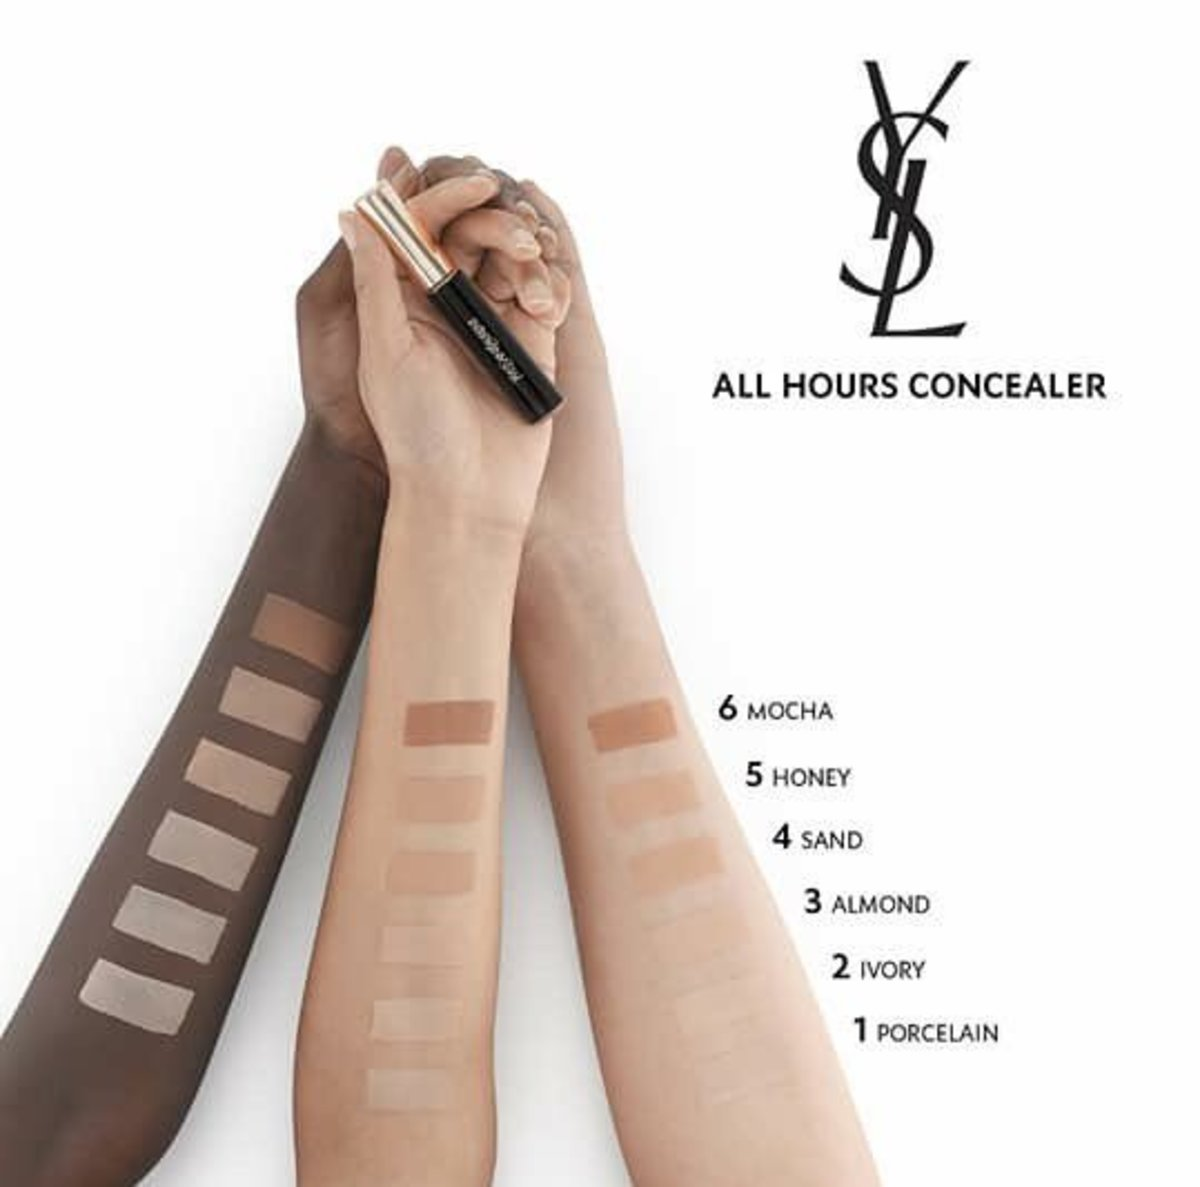 YSL's controversial swatches. Photo: YSL